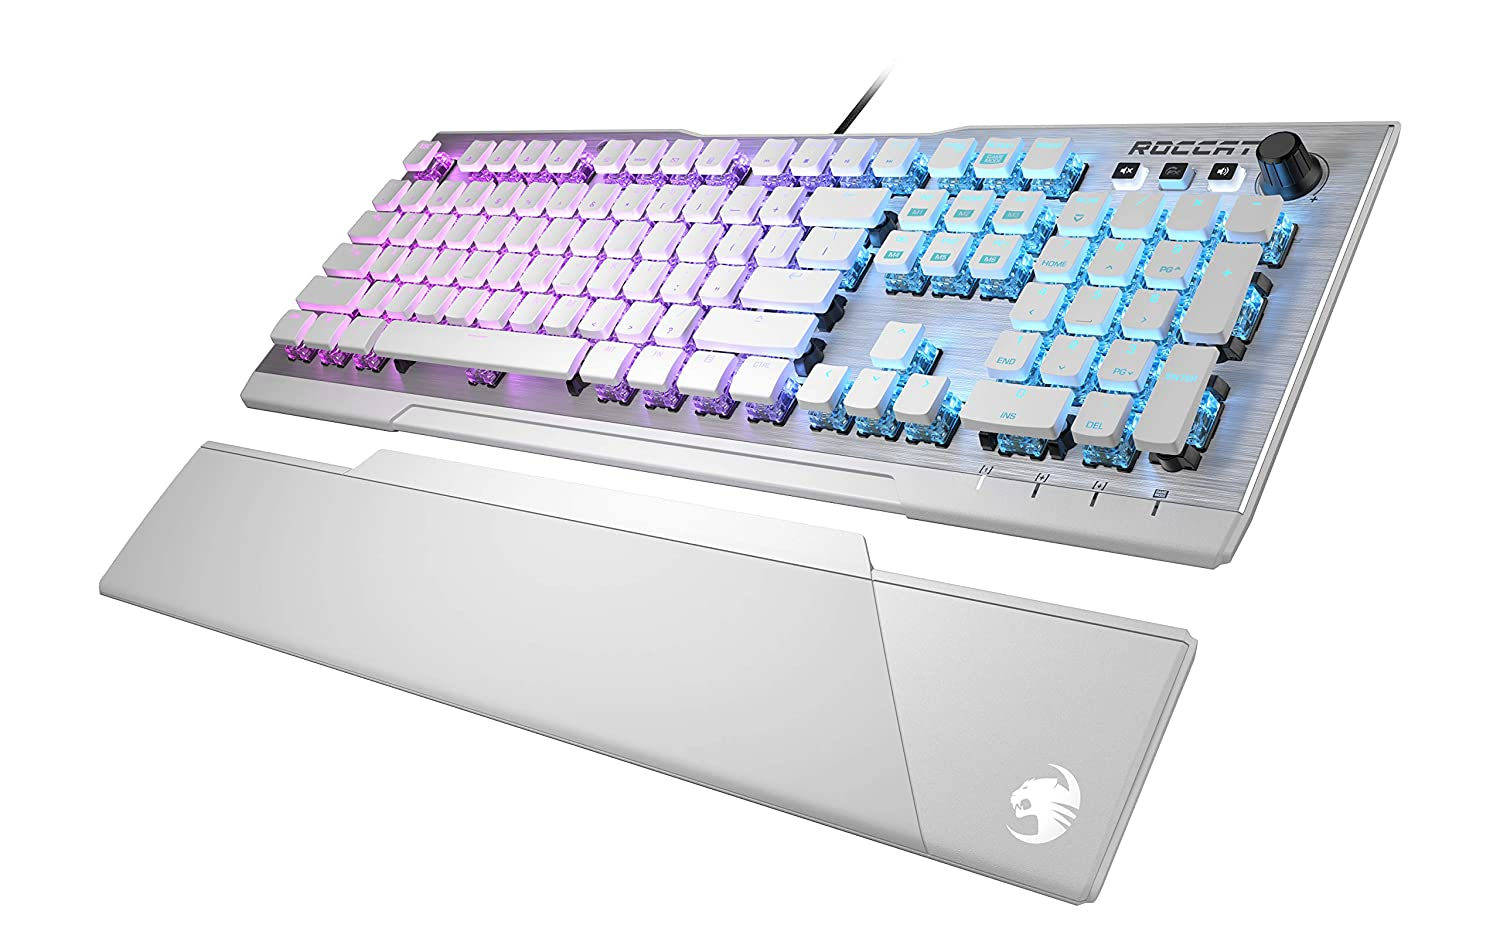 Vulcan 122 Aimo RGB Mechanical Gaming Keyboard – Brown Switches